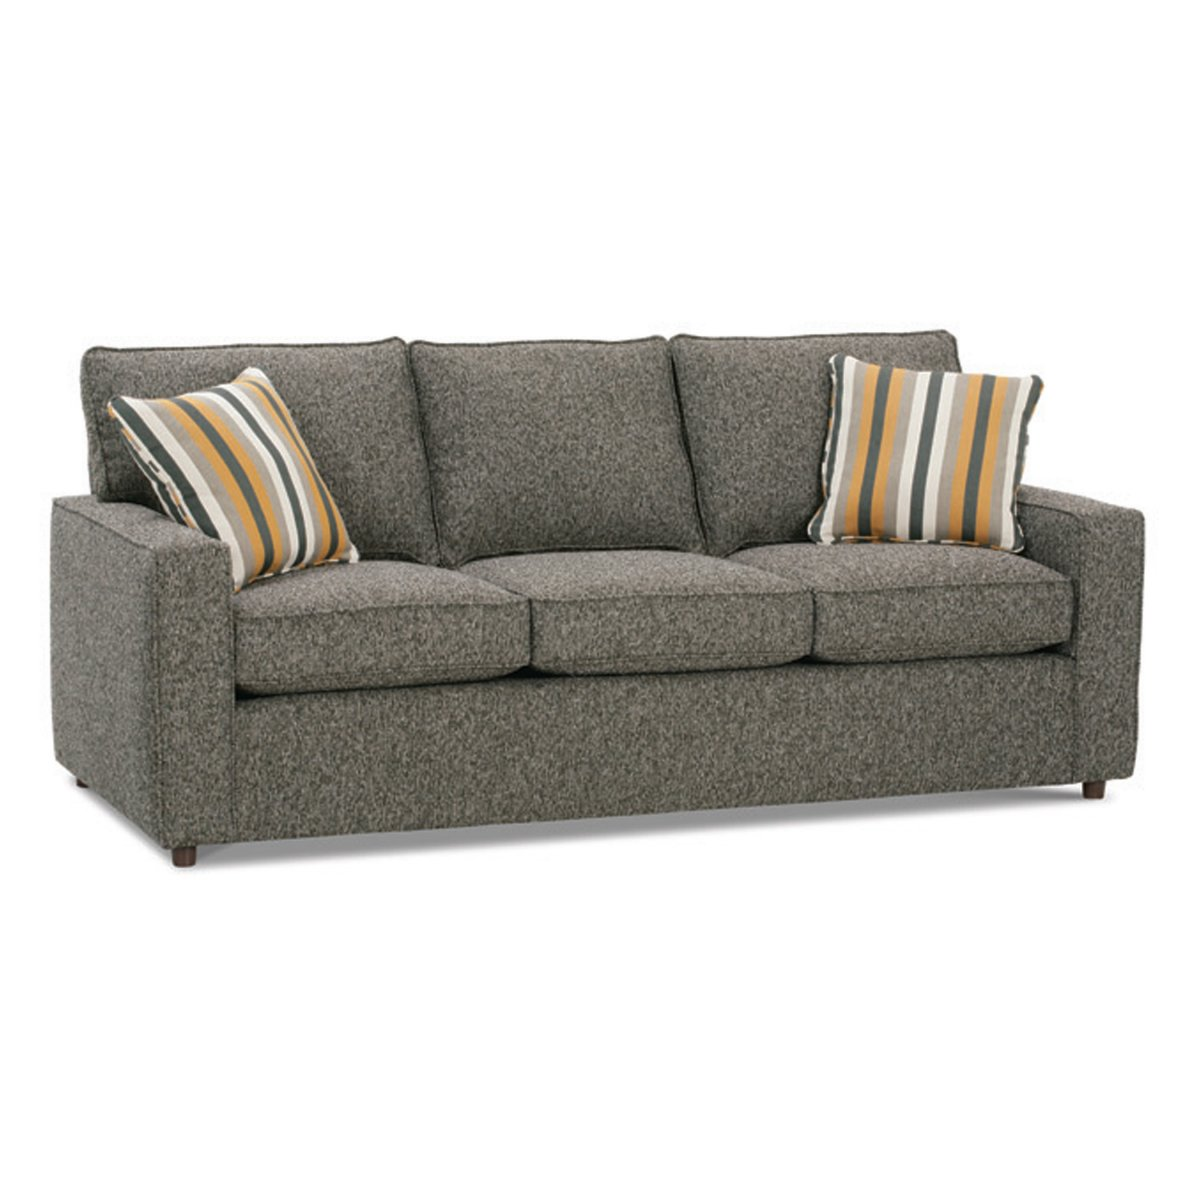 Mini Sofa Styles Creates Cute Room Atmosphere: Gorgeous Gray Modern Style Mini Sofa Strips Cushion Design